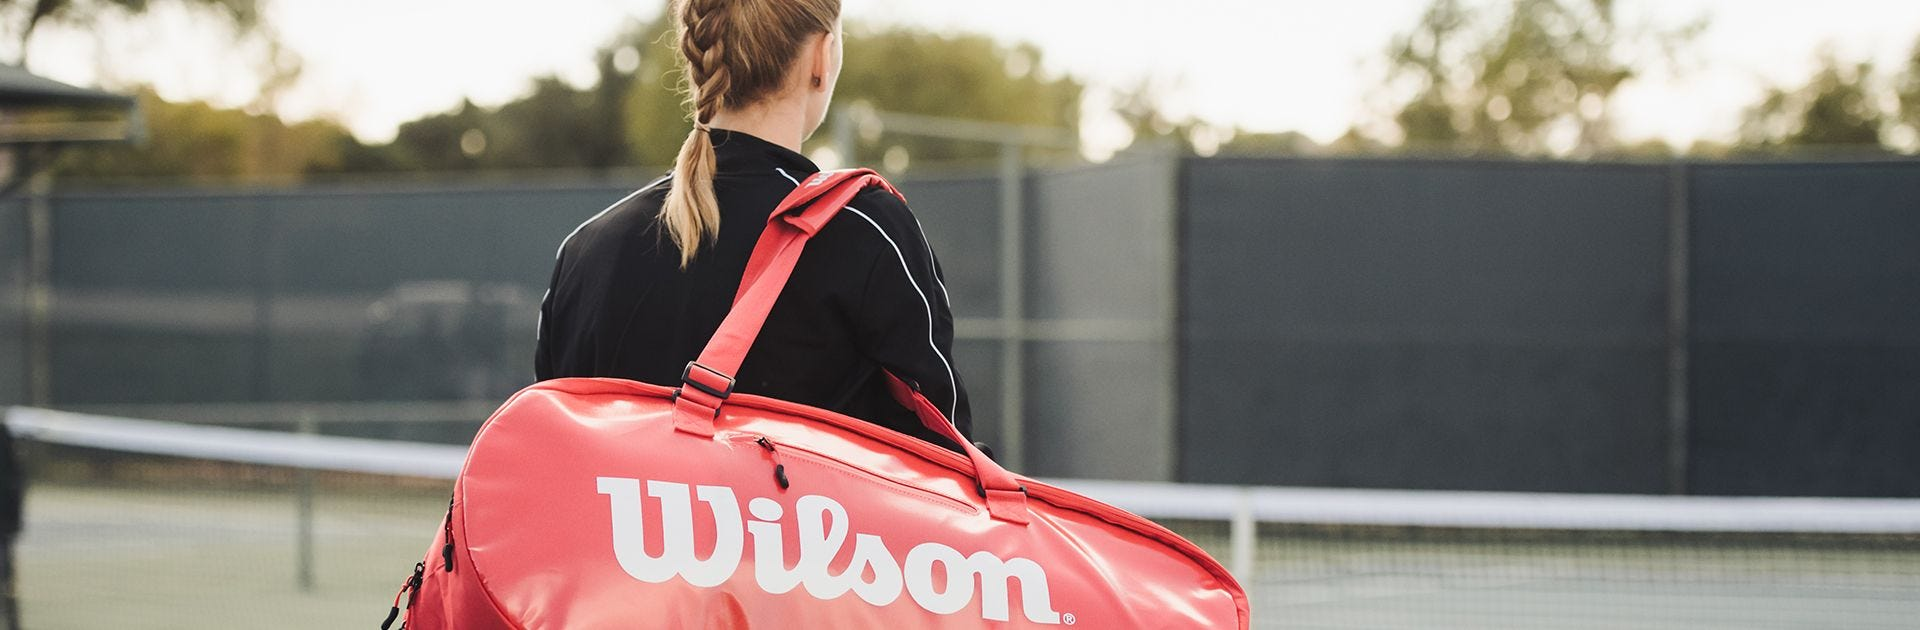 Player carrying tennis bag on court